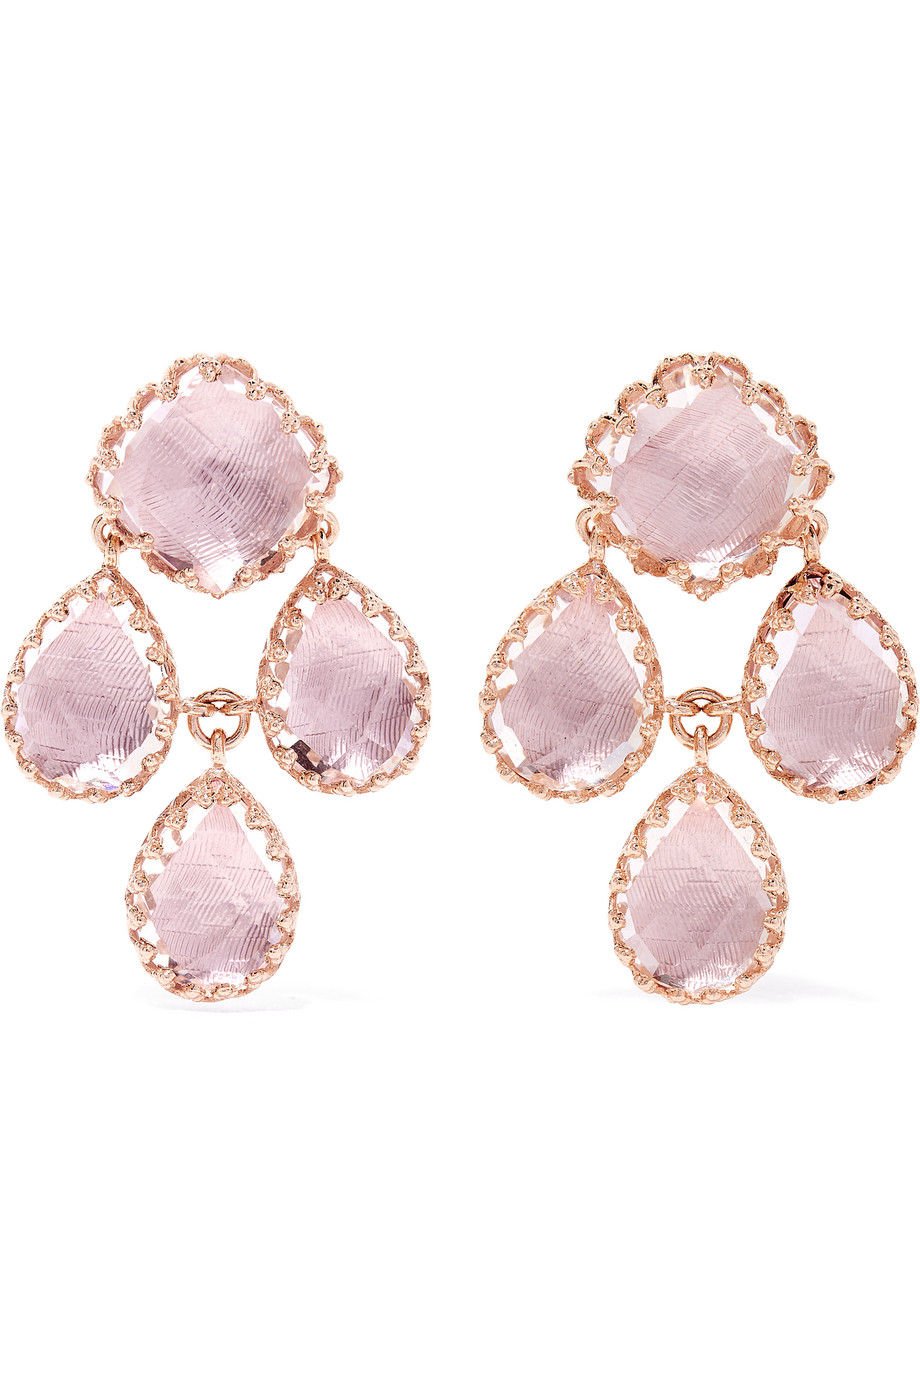 Larkspur & Hawk Antoinette Girandole Rose Gold-Dipped Quartz Earrings, Rose Gold/Pink, Women's